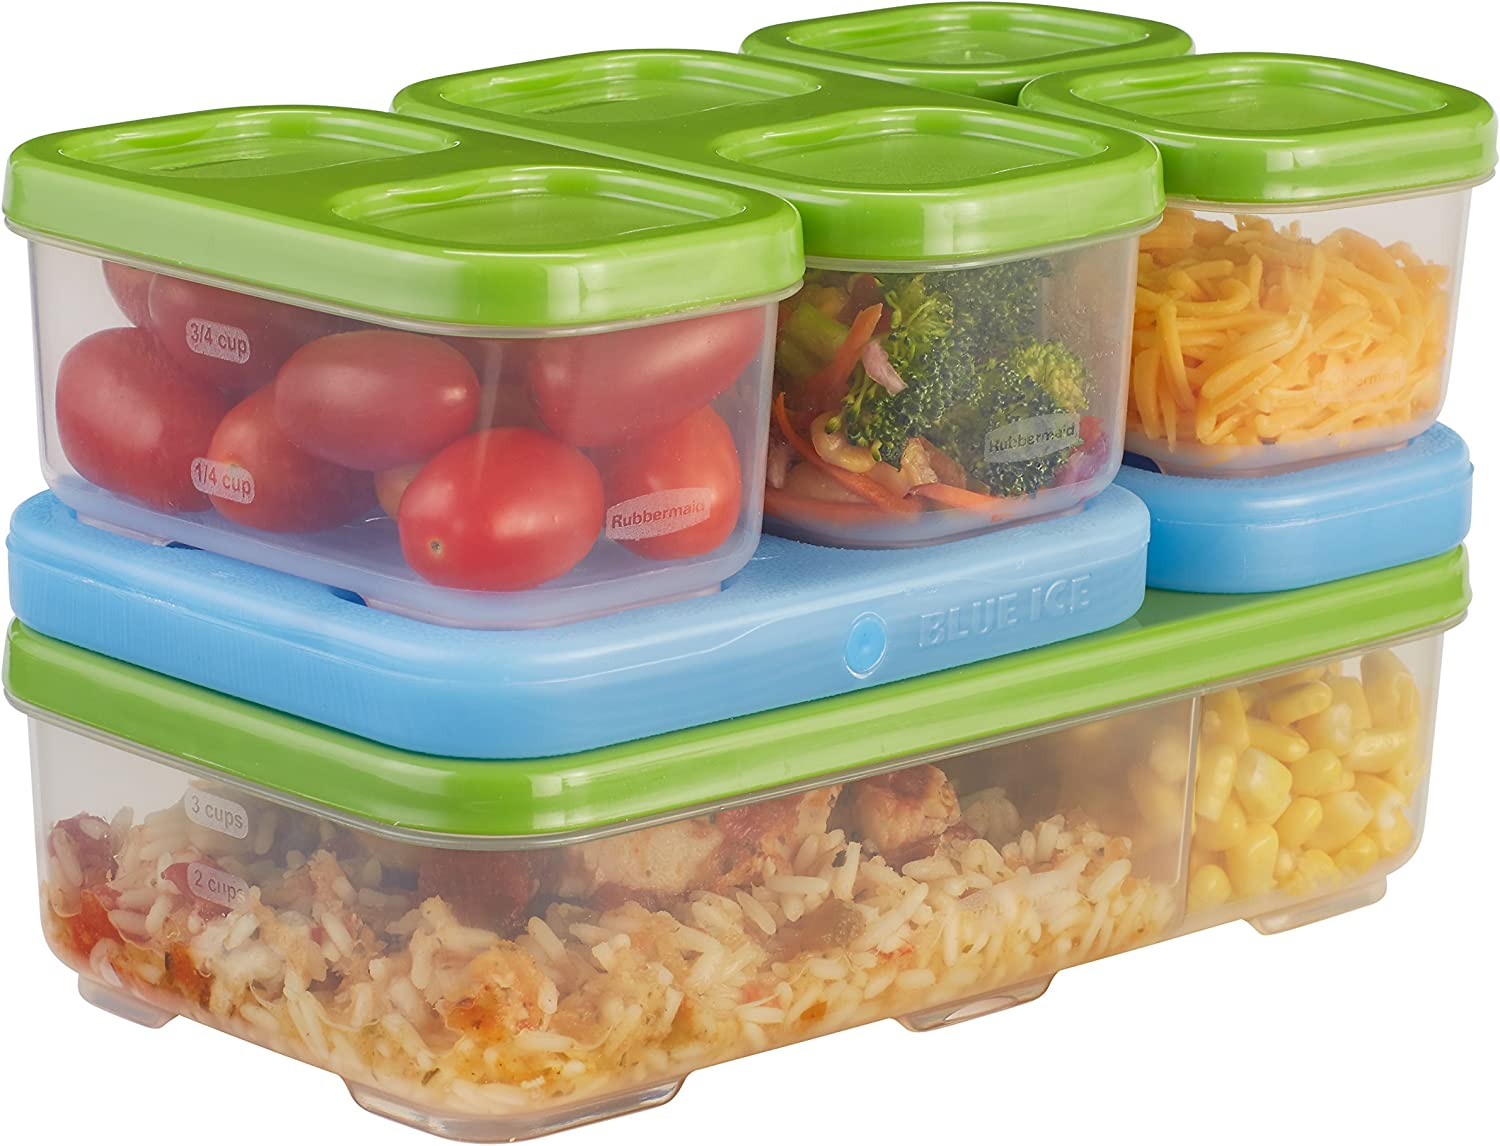 Rubbermaid Lunch Blox Food Snack Home Kitchen Salad Kit 1806179